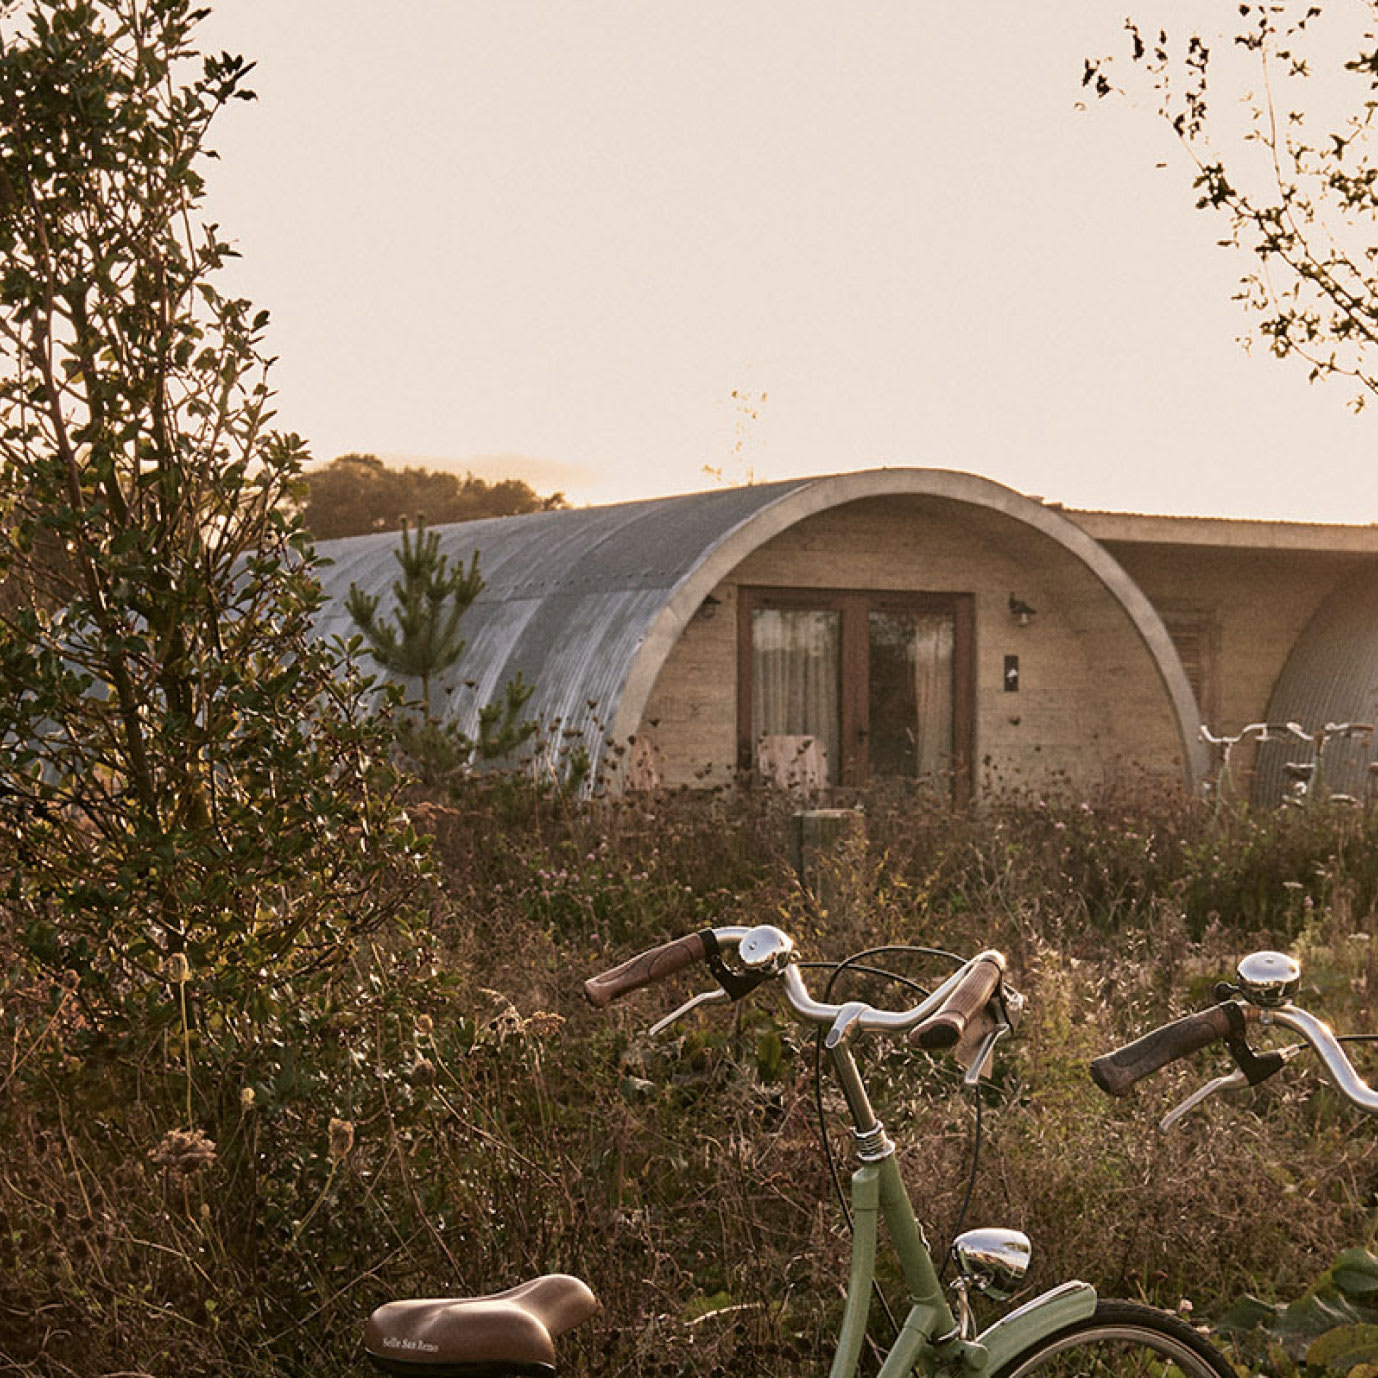 Two bikes and some vegetation in front of two dwellings at sunset.